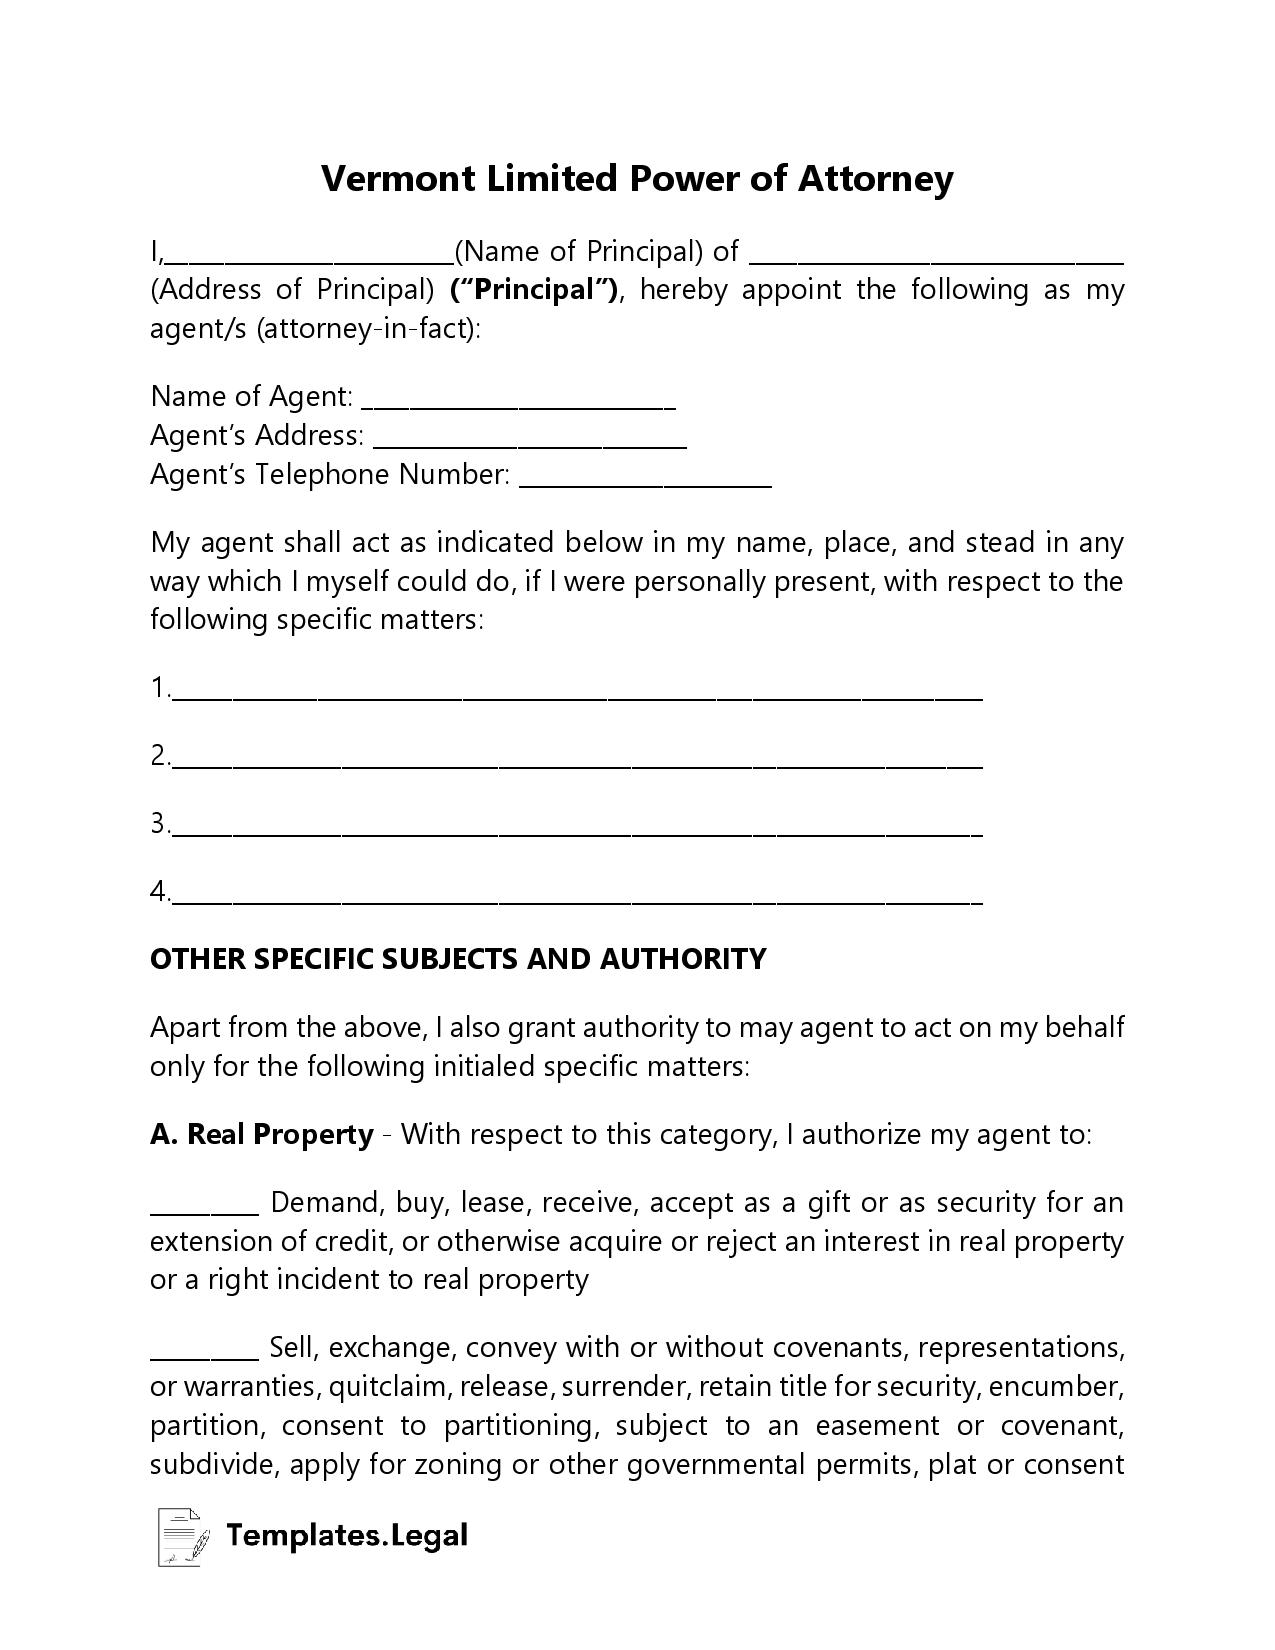 Vermont Limited Power of Attorney - Templates.Legal